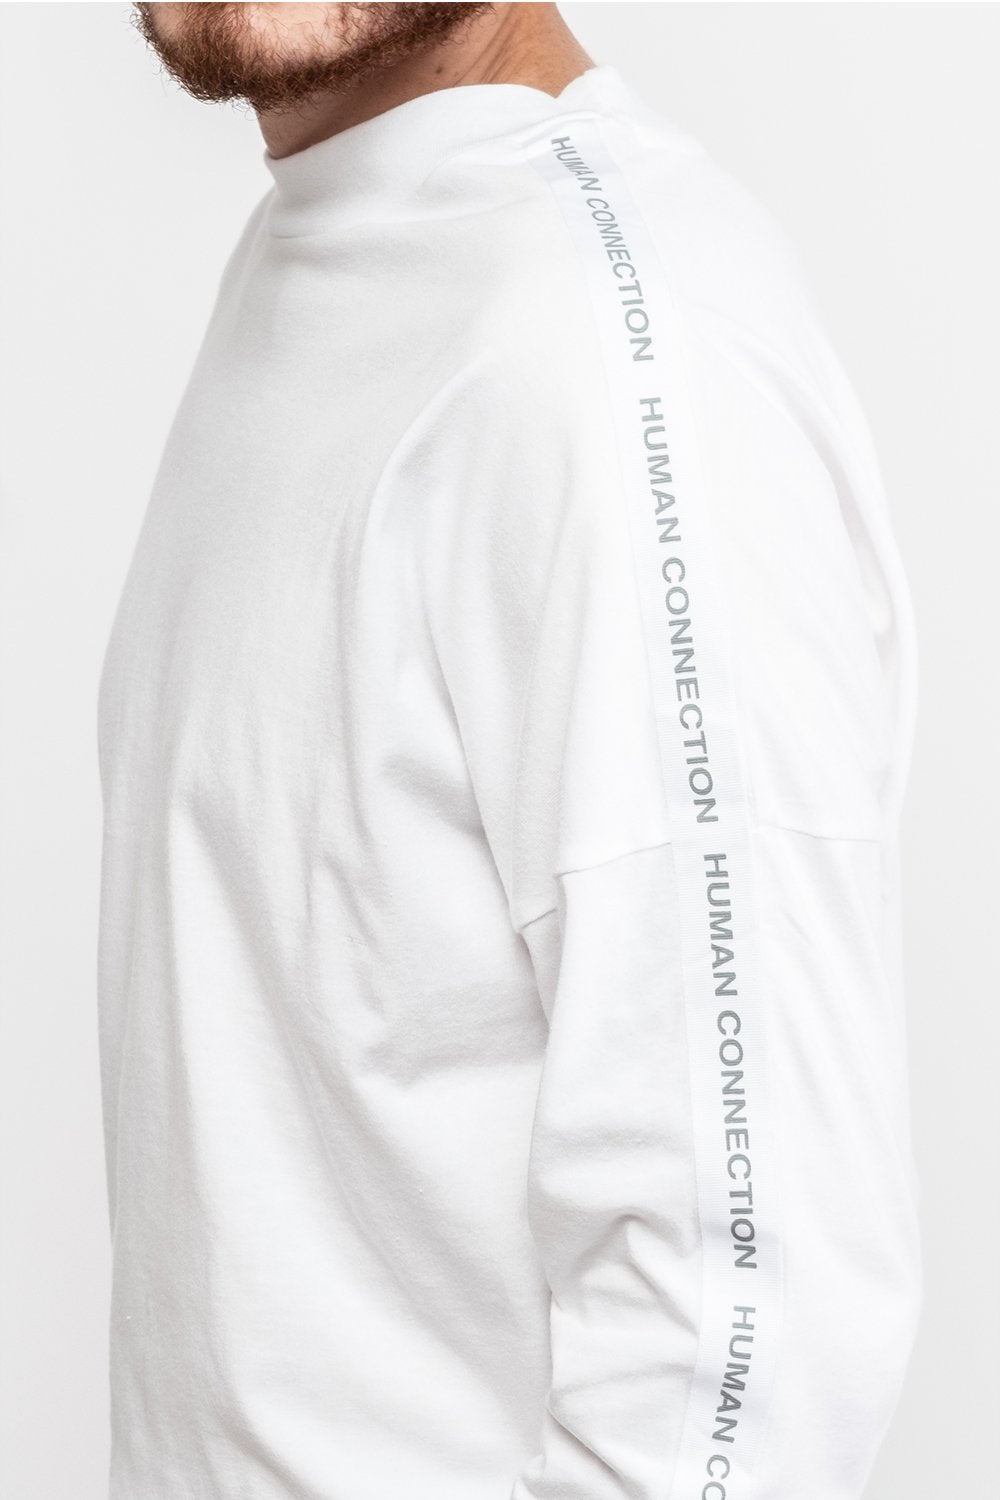 Human Connection Full Sleeve T-Shirt - White